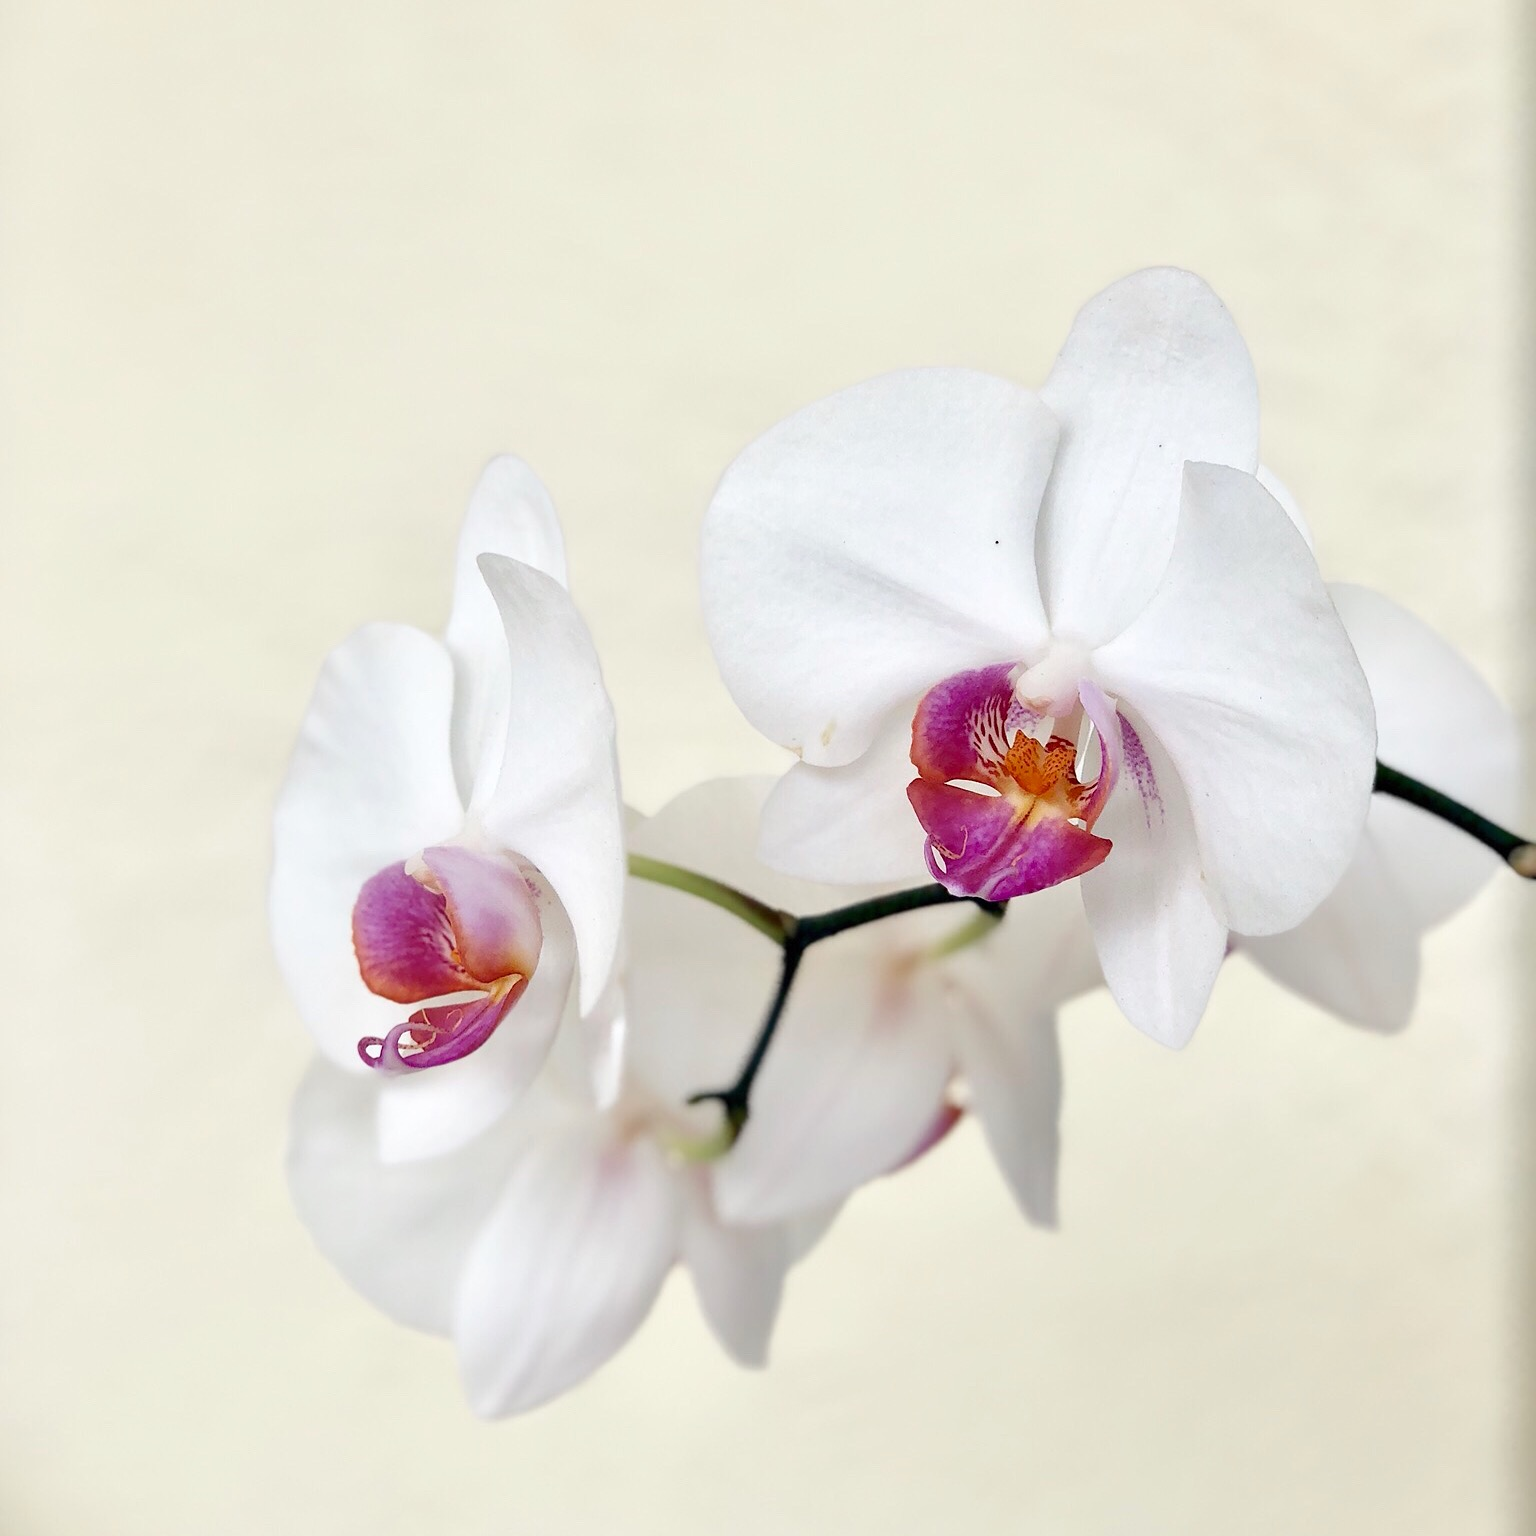 Phalaenopsis Orchid from my Grandmother's home